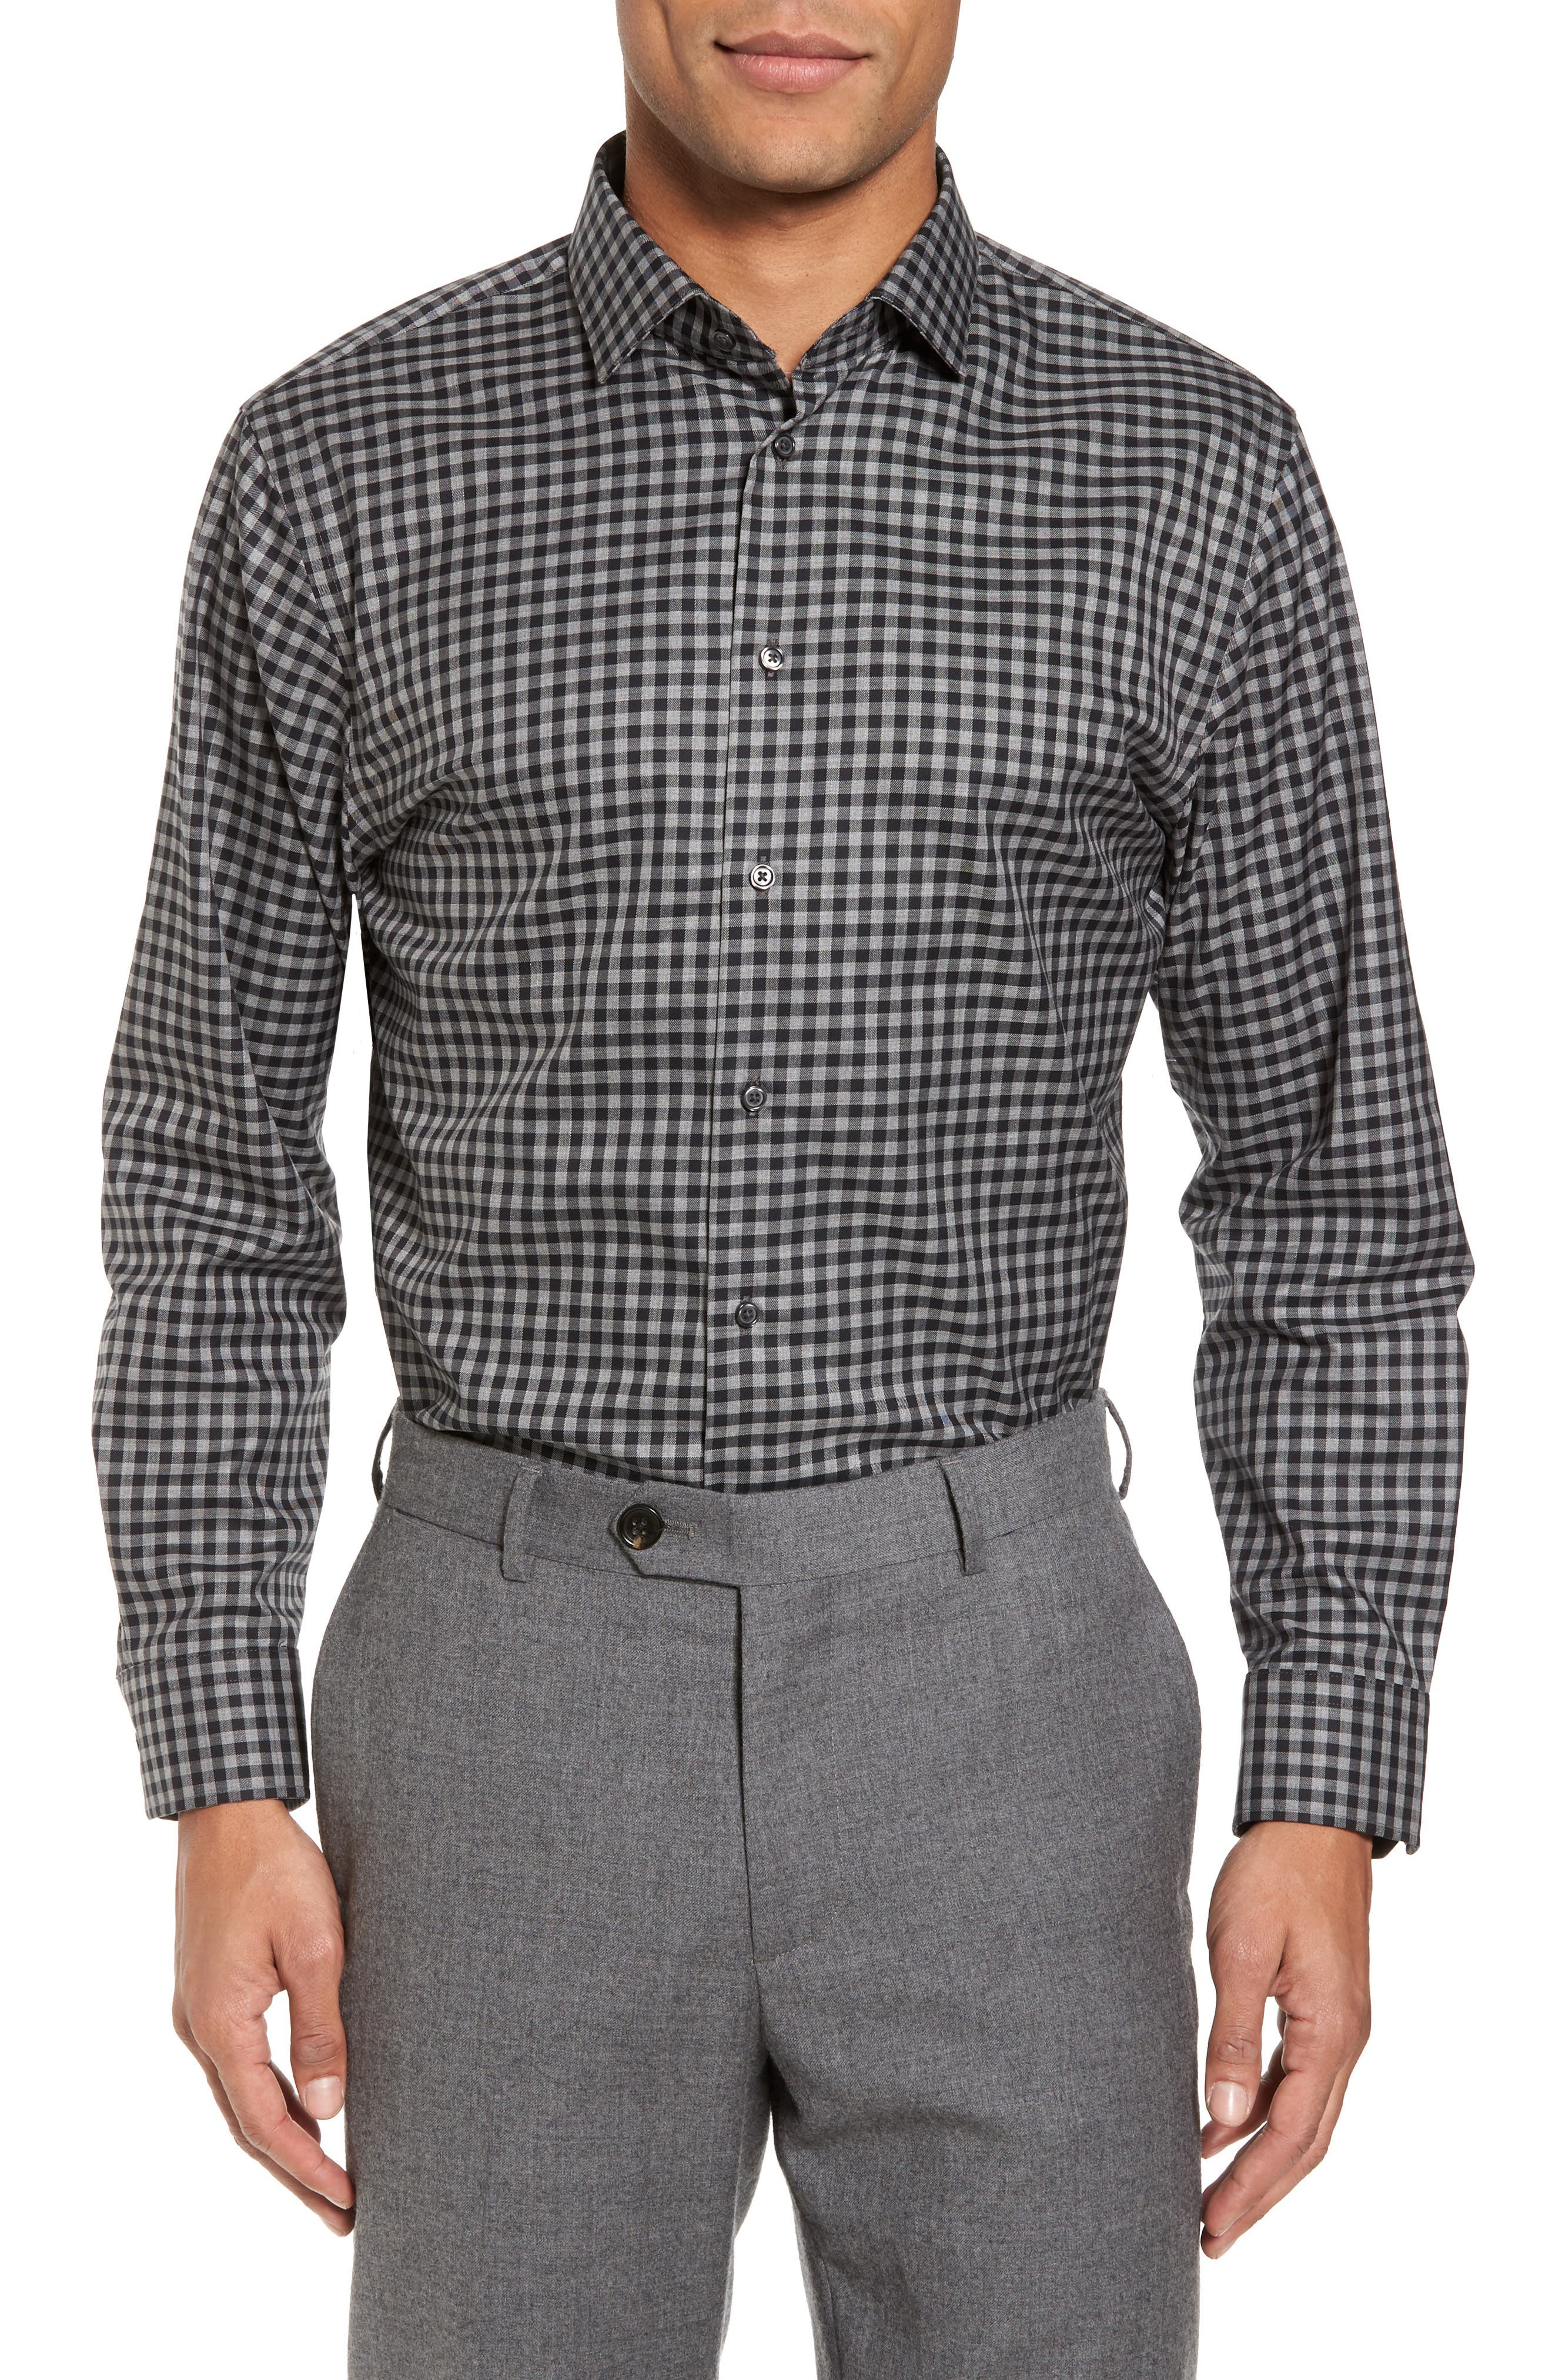 Alternate Image 1 Selected - Calibrate Trim Fit Check Dress Shirt